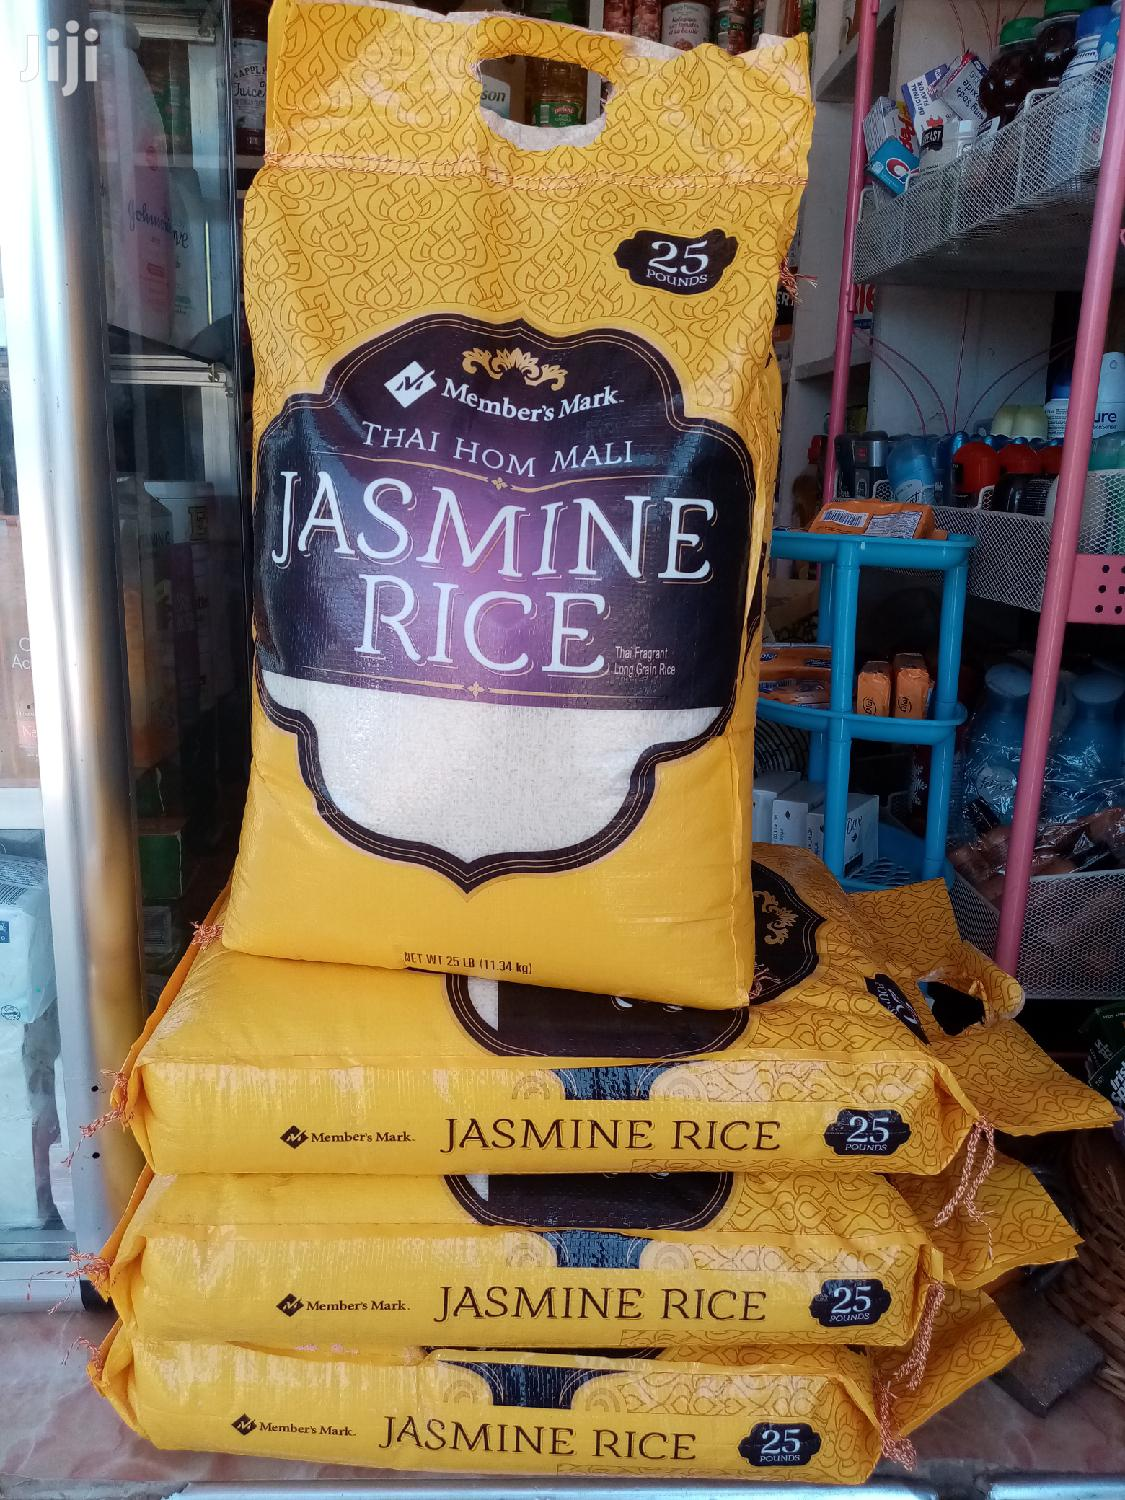 Member's Mark Thai Jasmine Rice 11.34kg